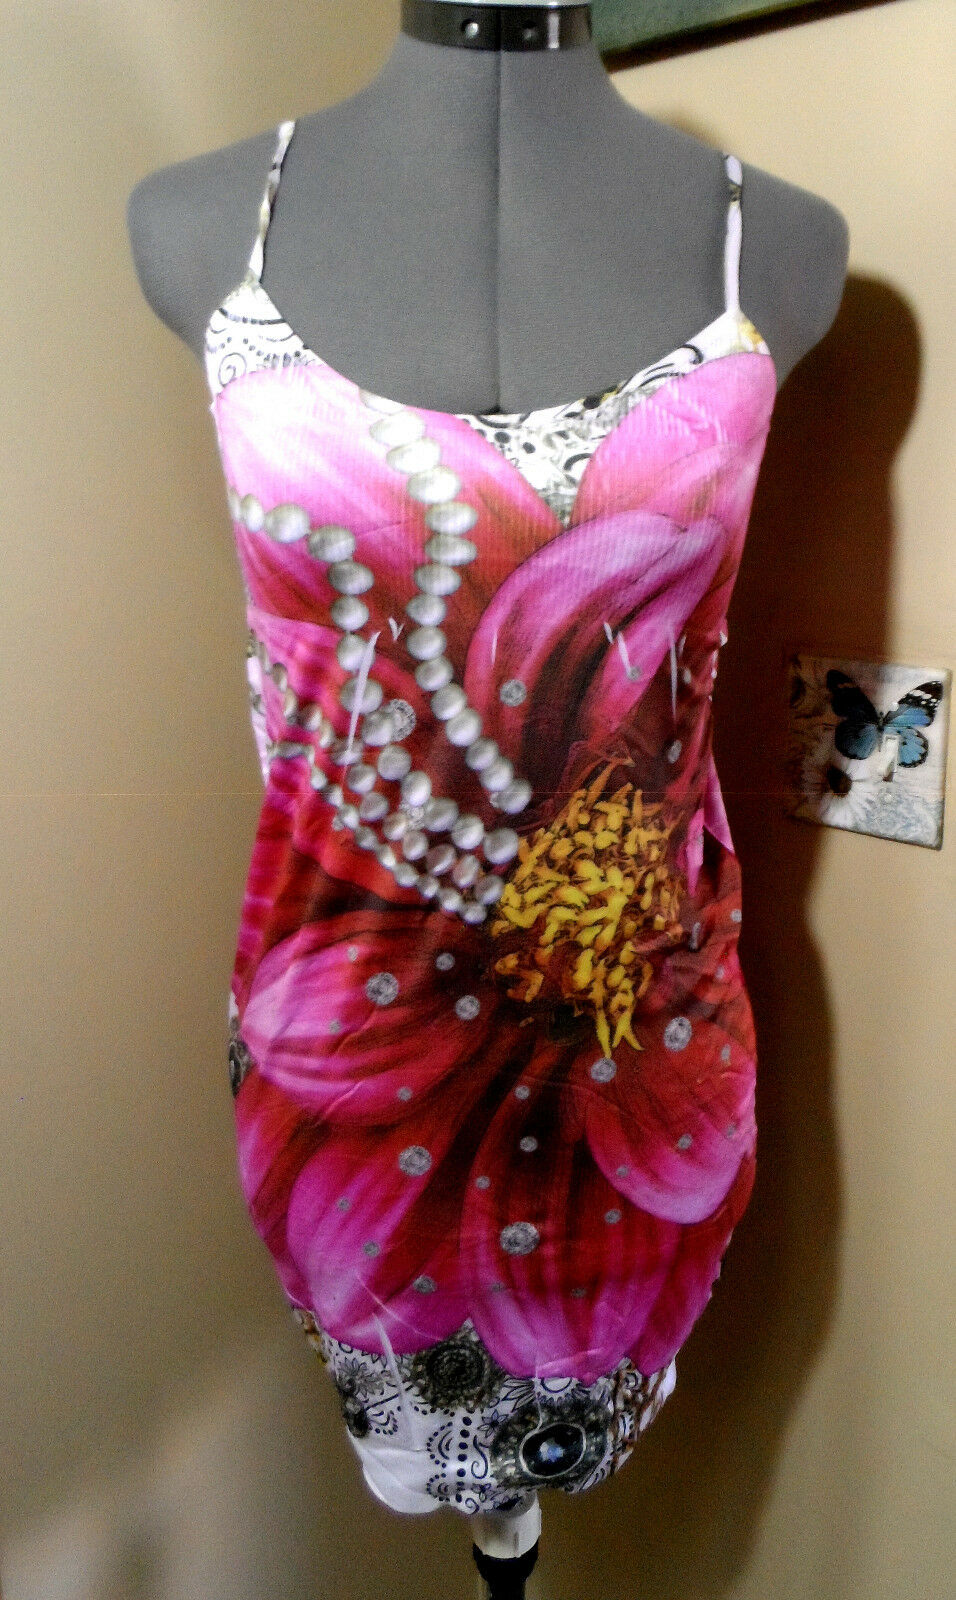 Top XS S M Floral Roses Tribal Pearl Cheetah CONVERTIBLE New F/&G Bodycon Dress